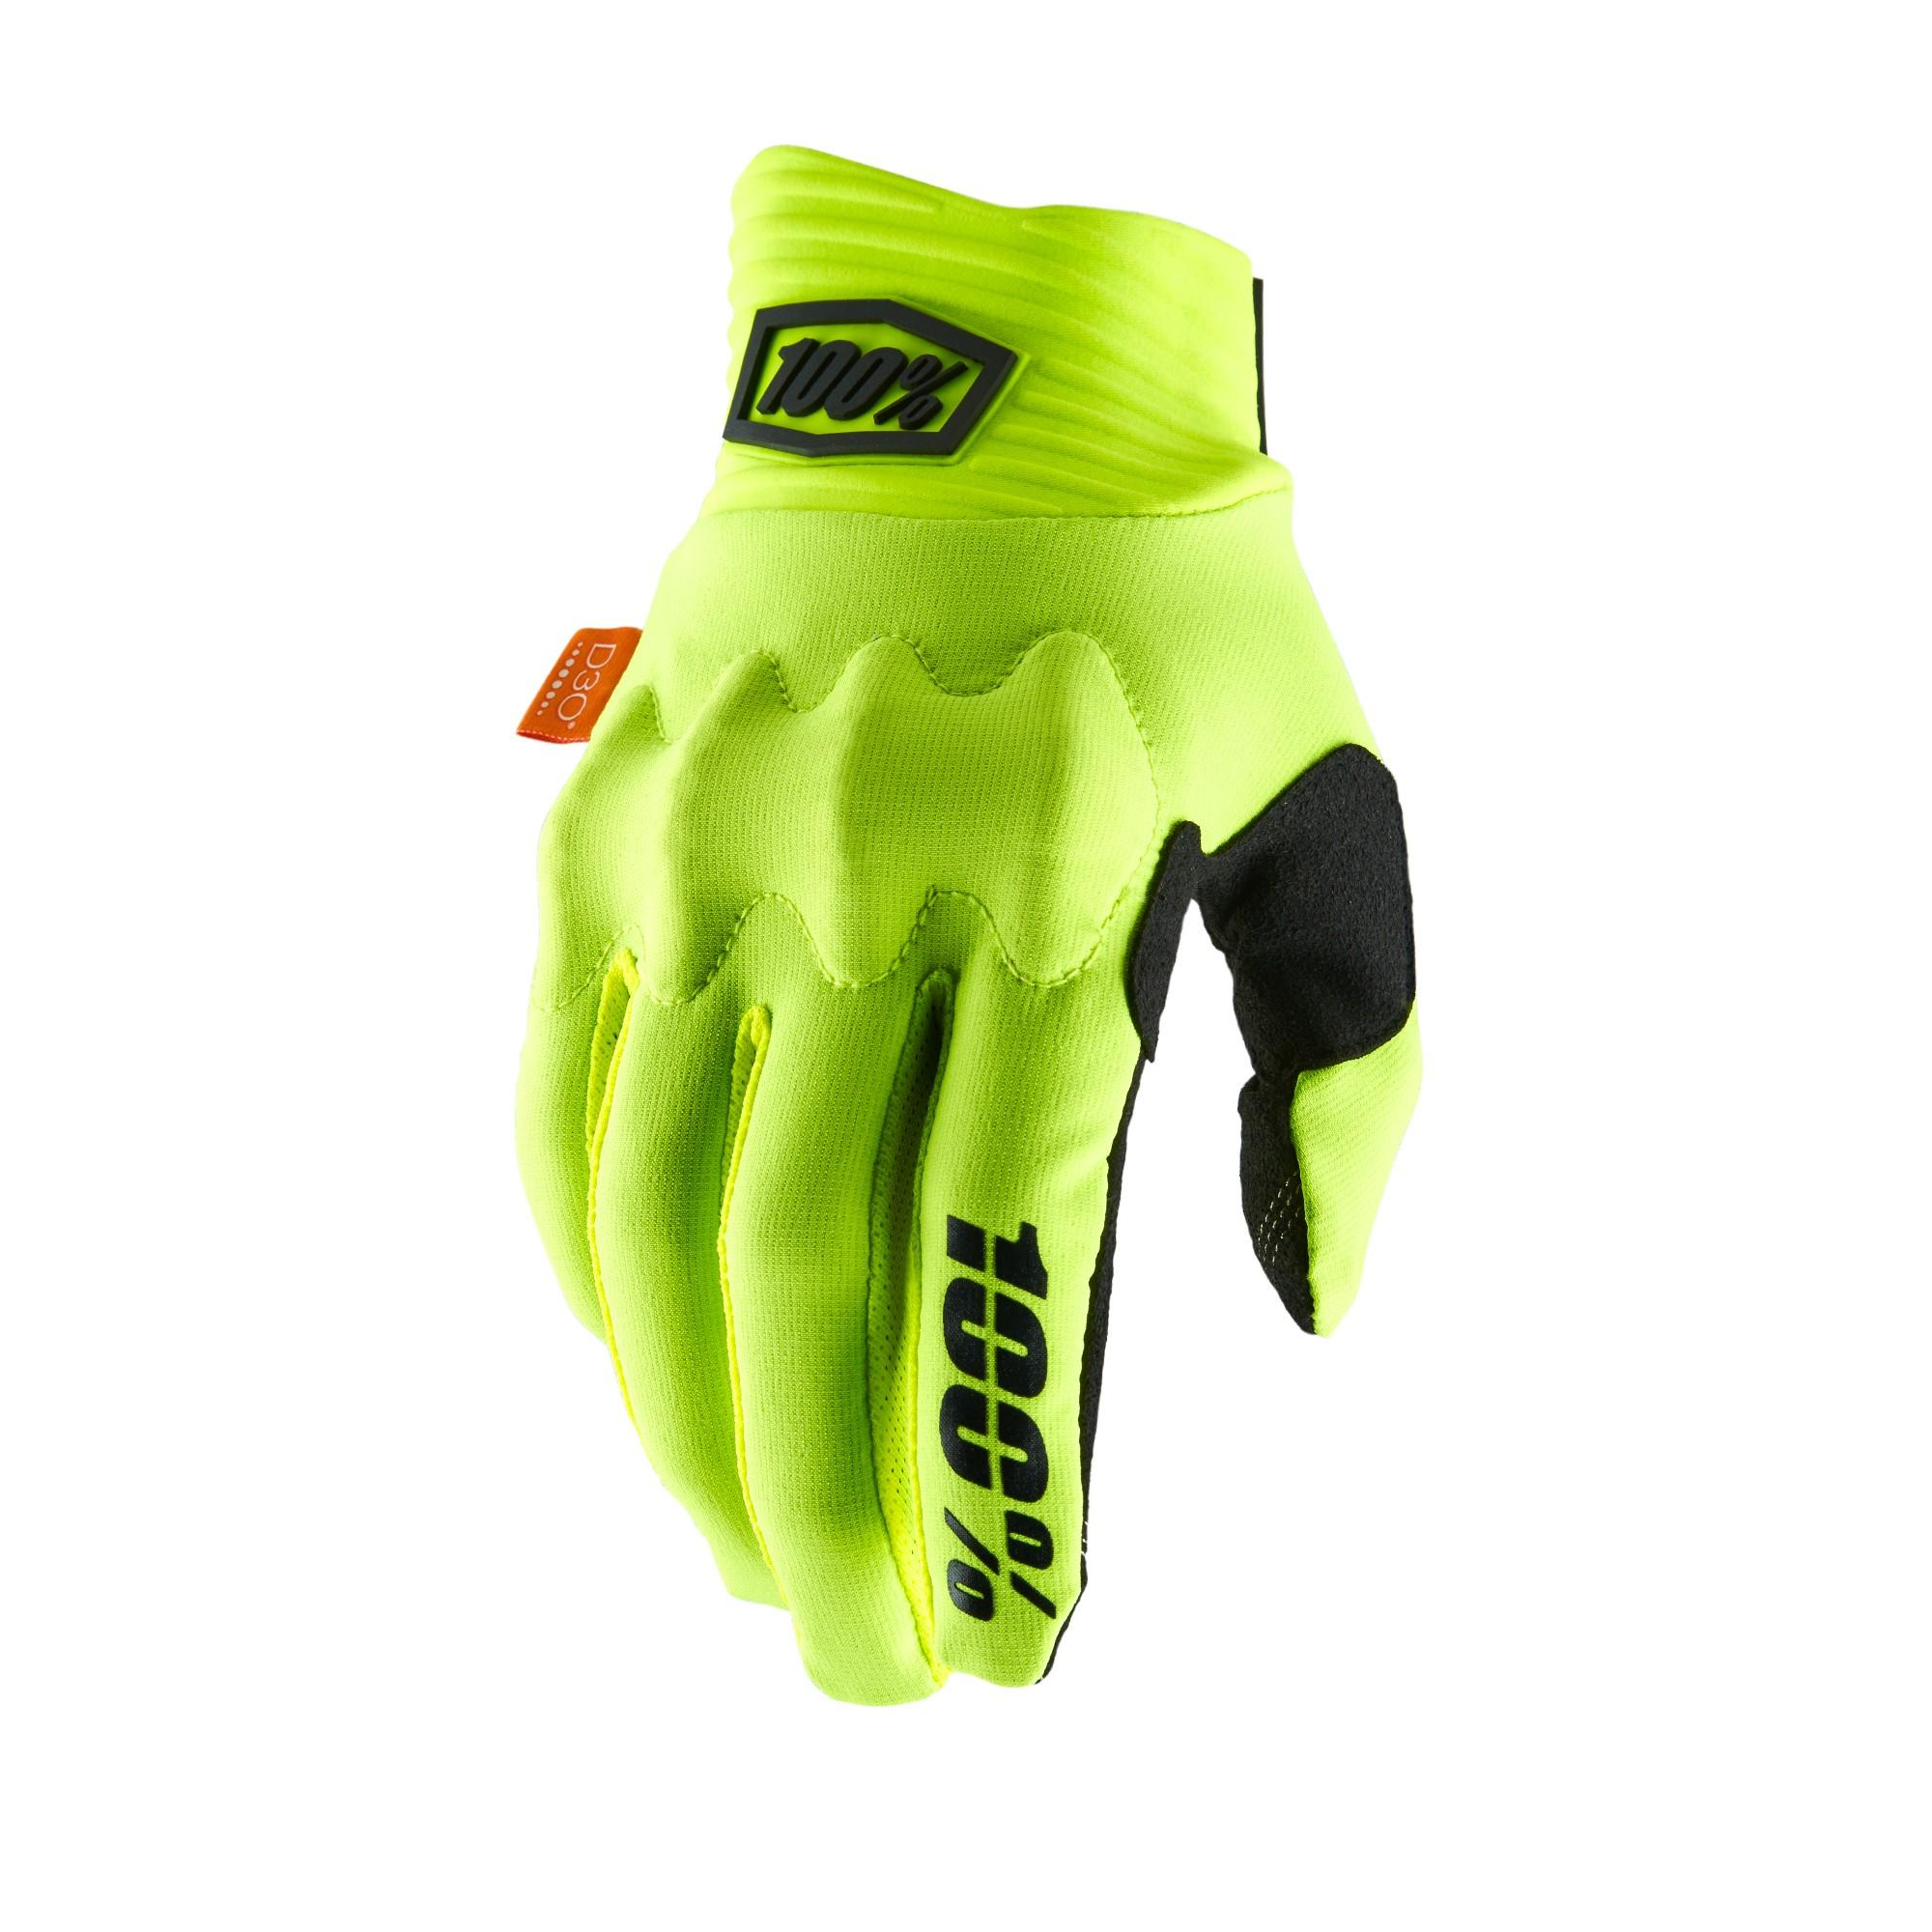 COGNITO 100% Glove Fluo Yellow/Black